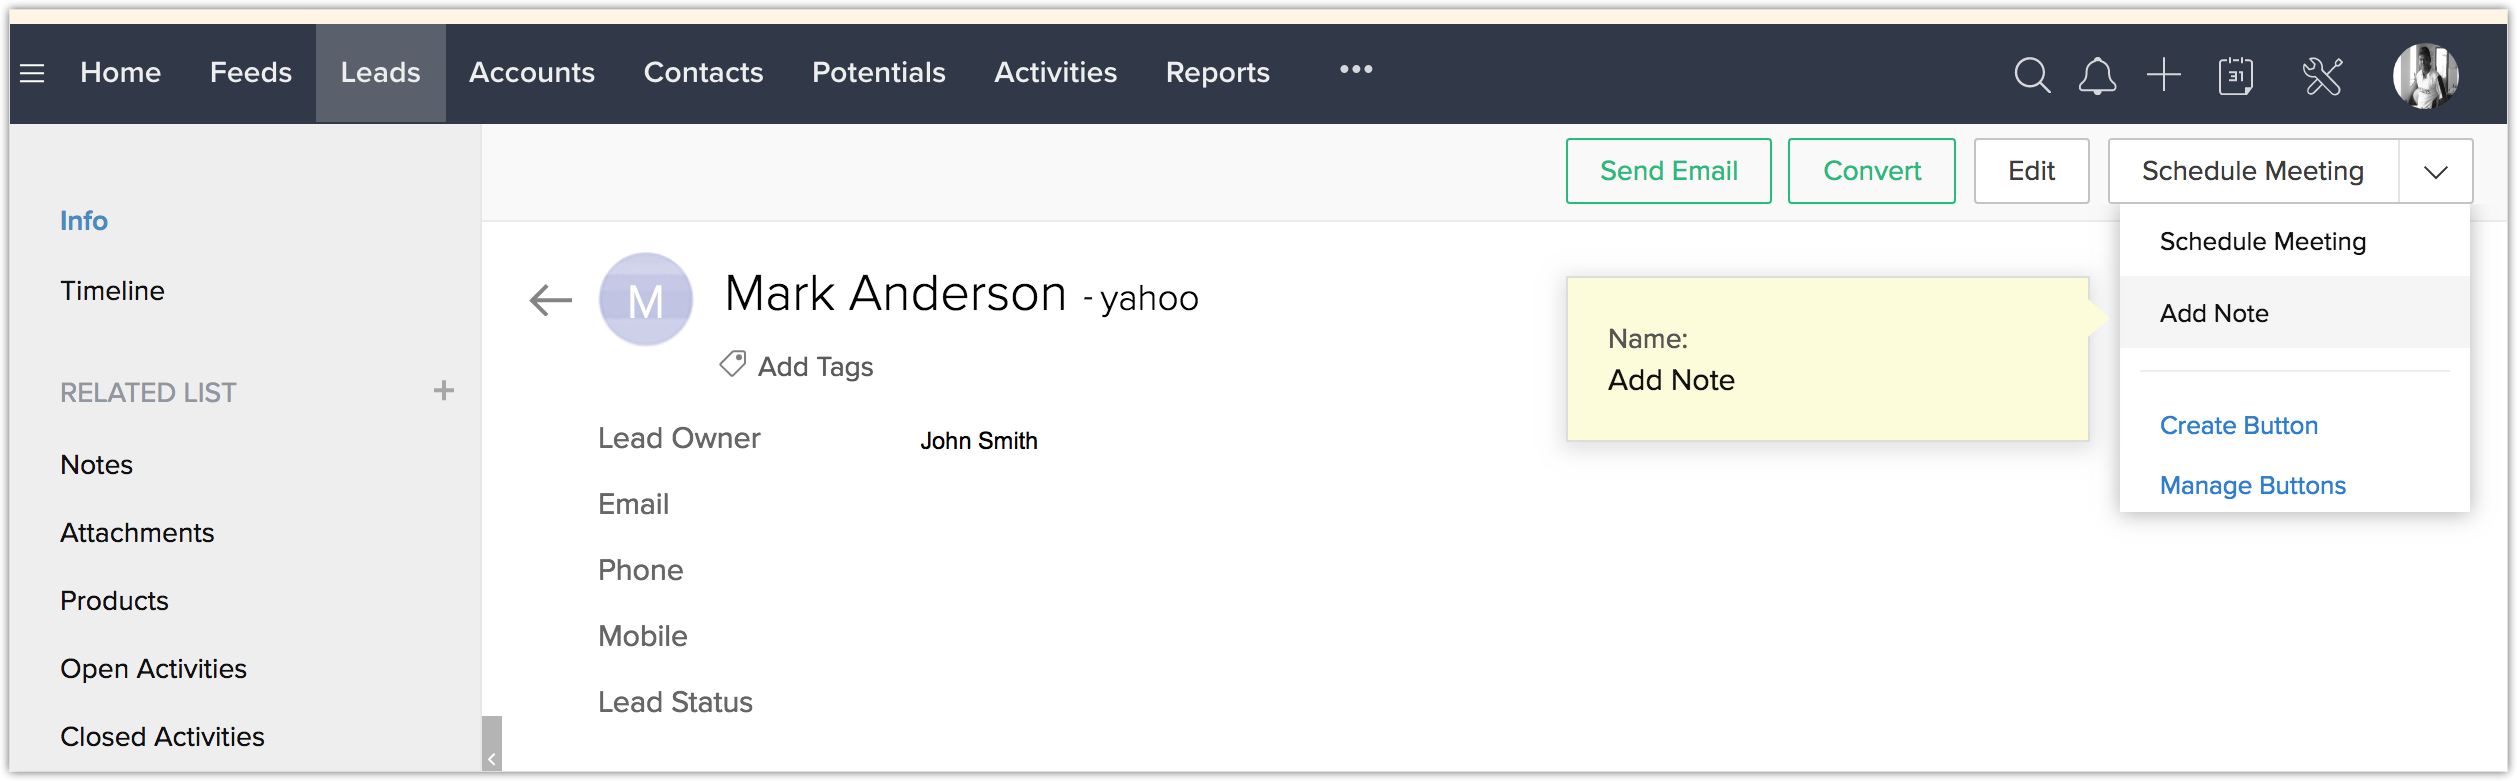 OneNote Extension | Online Help - Zoho CRM